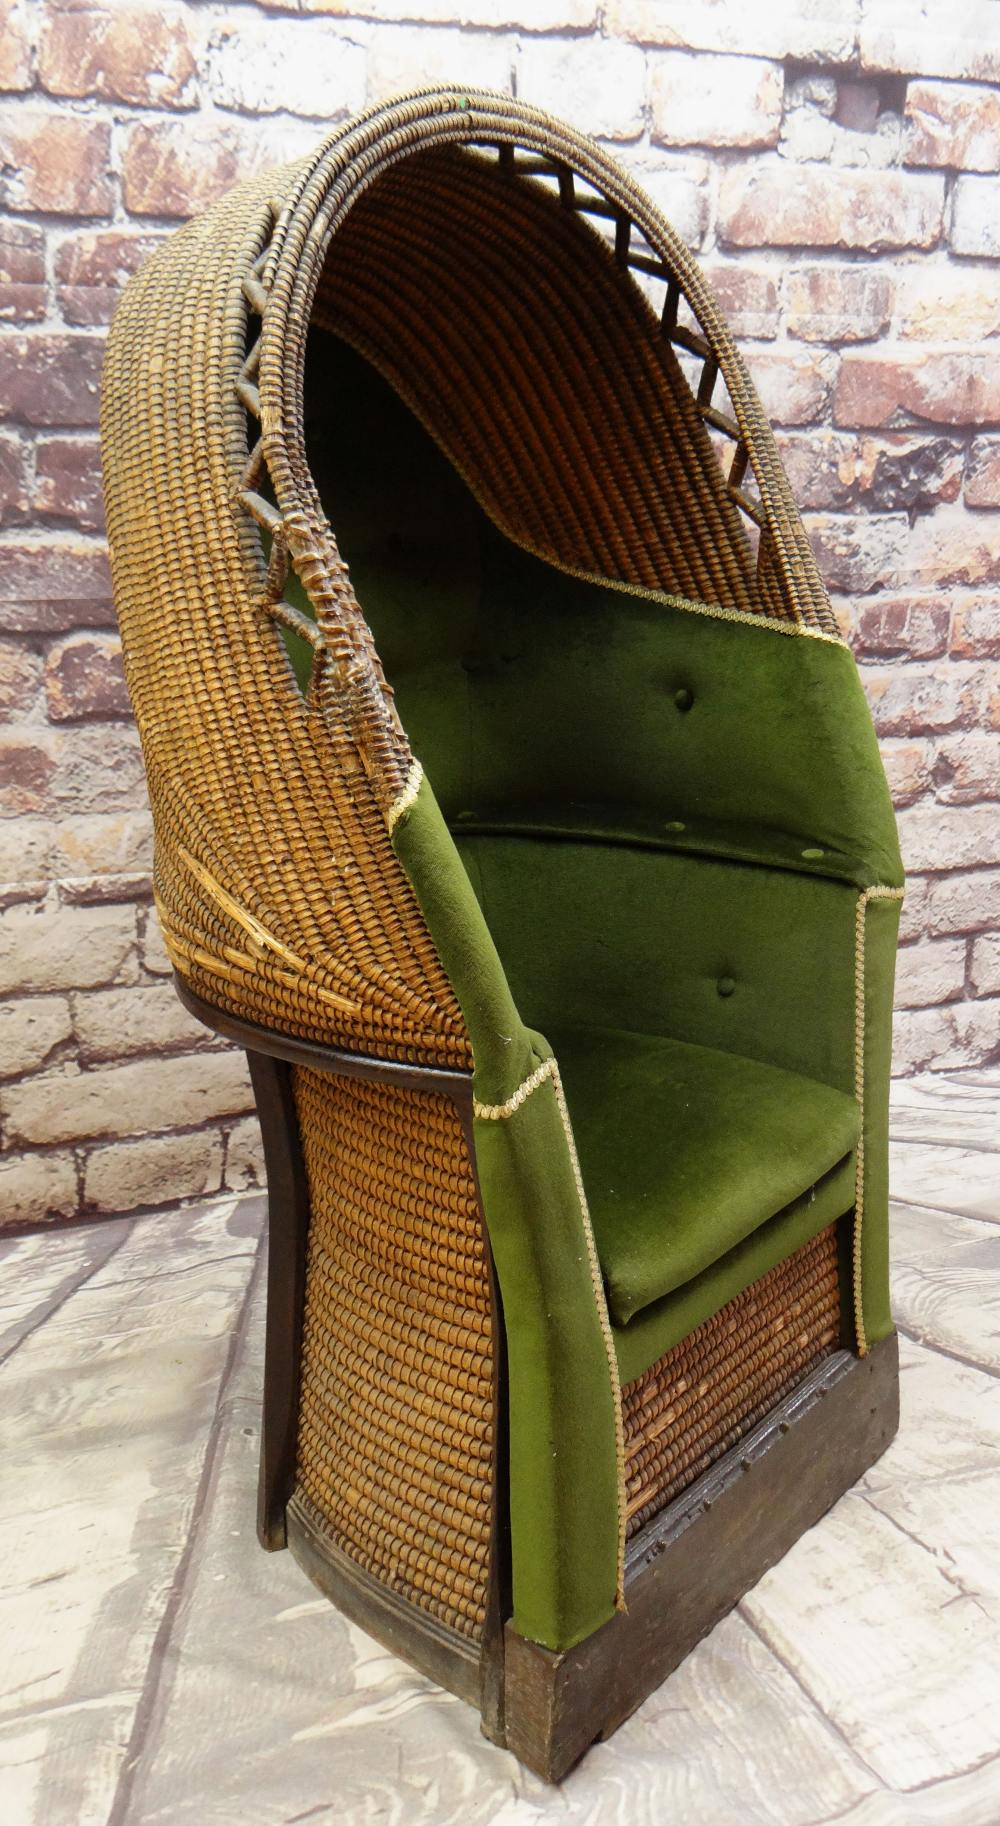 A RARE 19TH CENTURY MONMOUTHSHIRE LIPWORK BEEHIVE ARMCHAIR of wicker composition, wooden structure - Image 2 of 6